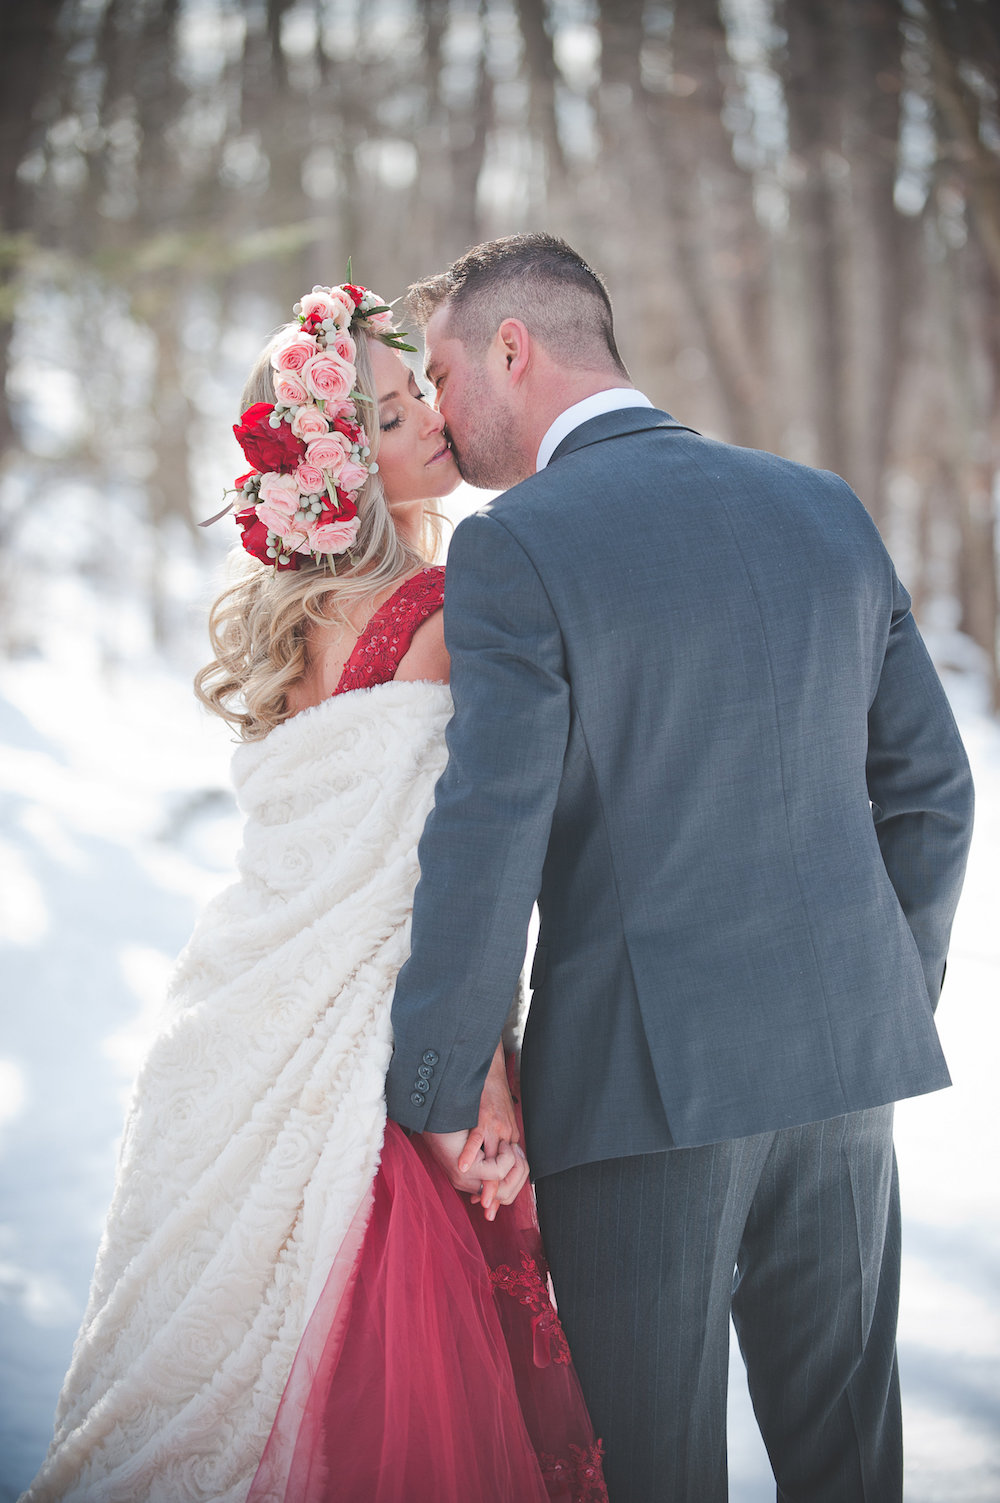 Pomegranate Red Winter Wedding Inspiration - photo by Jenni Grace Photography / floral crown by The Blue Daisy